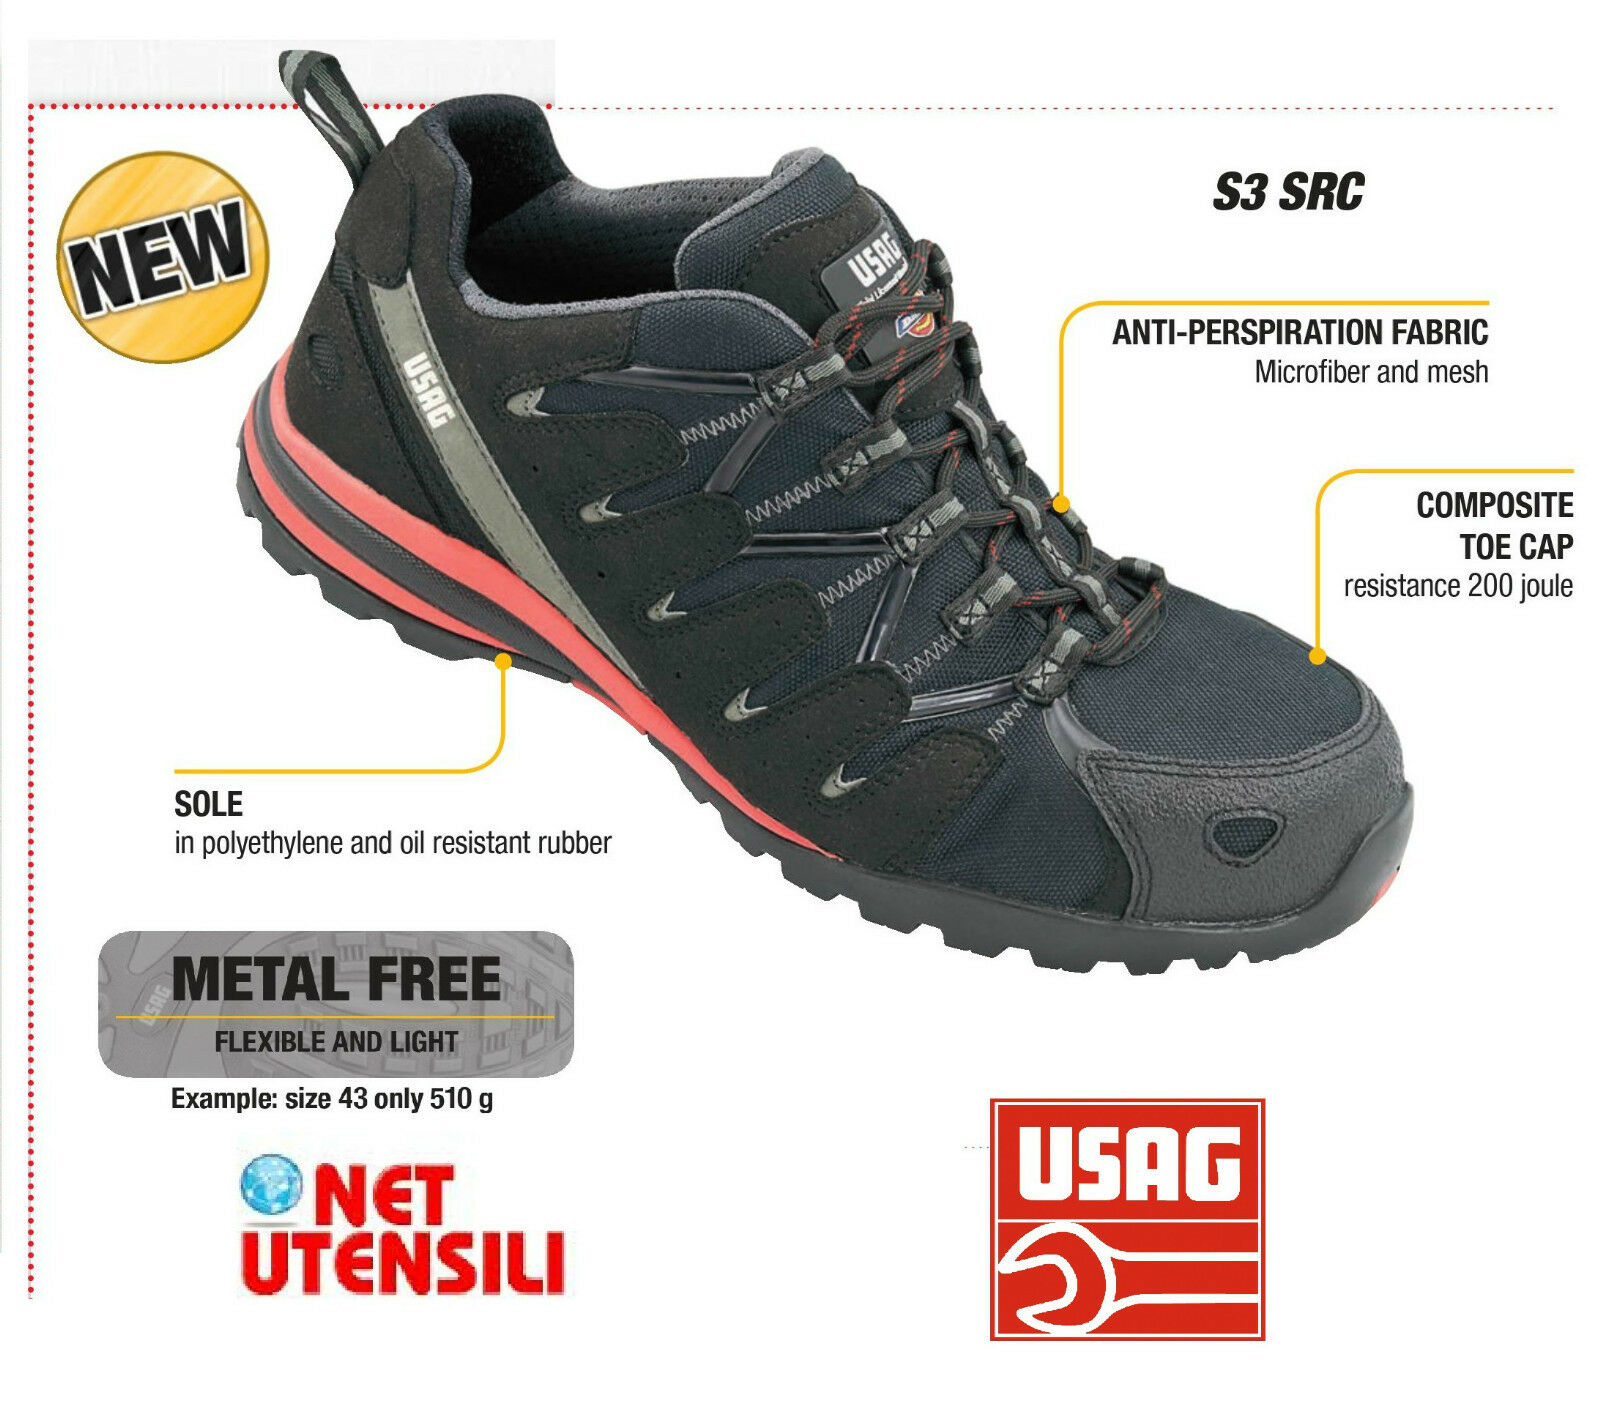 USAG 3500 S3A SCARPA SAFETY SHOES FROM WORK OF SECURITY METAL FREE